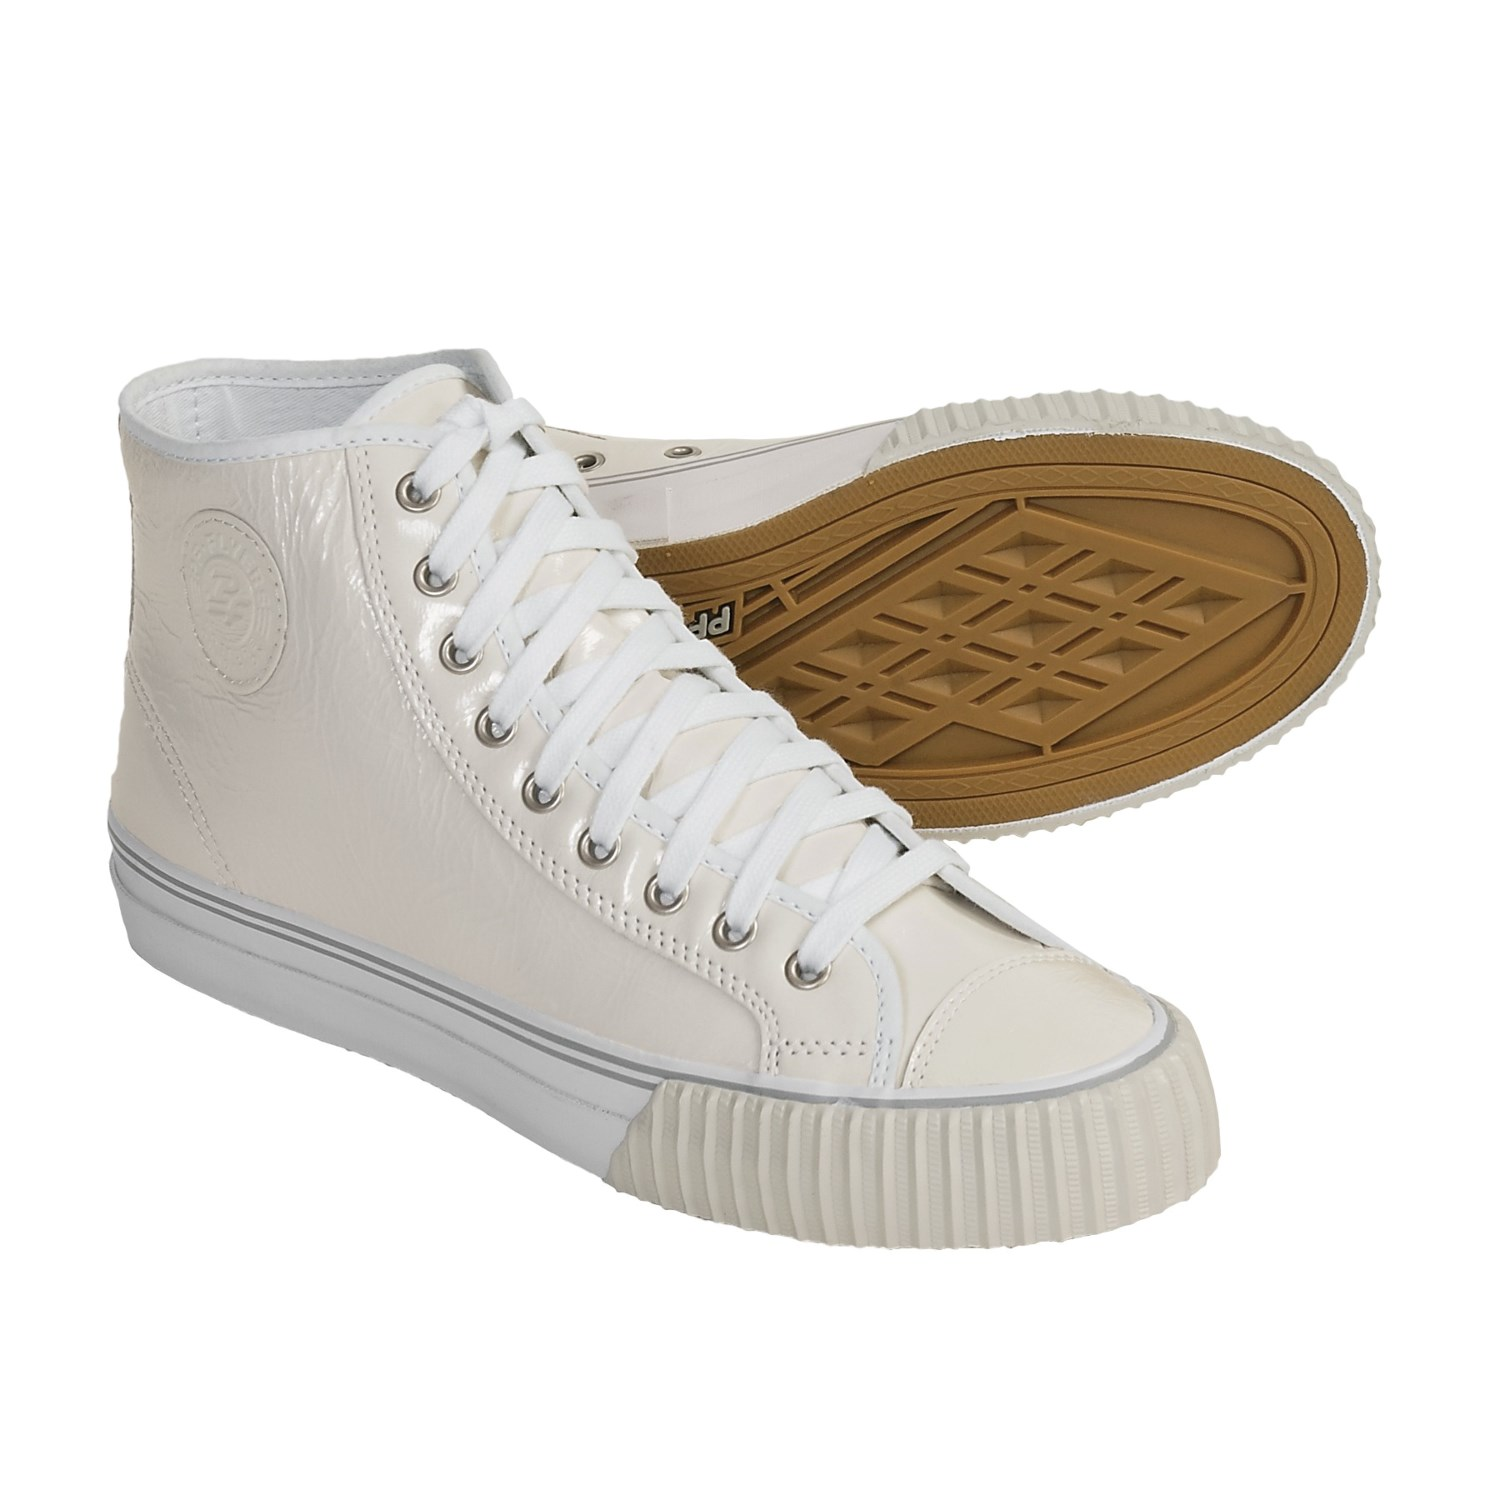 pf-flyers-center-high-top-sneakers-reissue-for-men-and-women~p~3319y